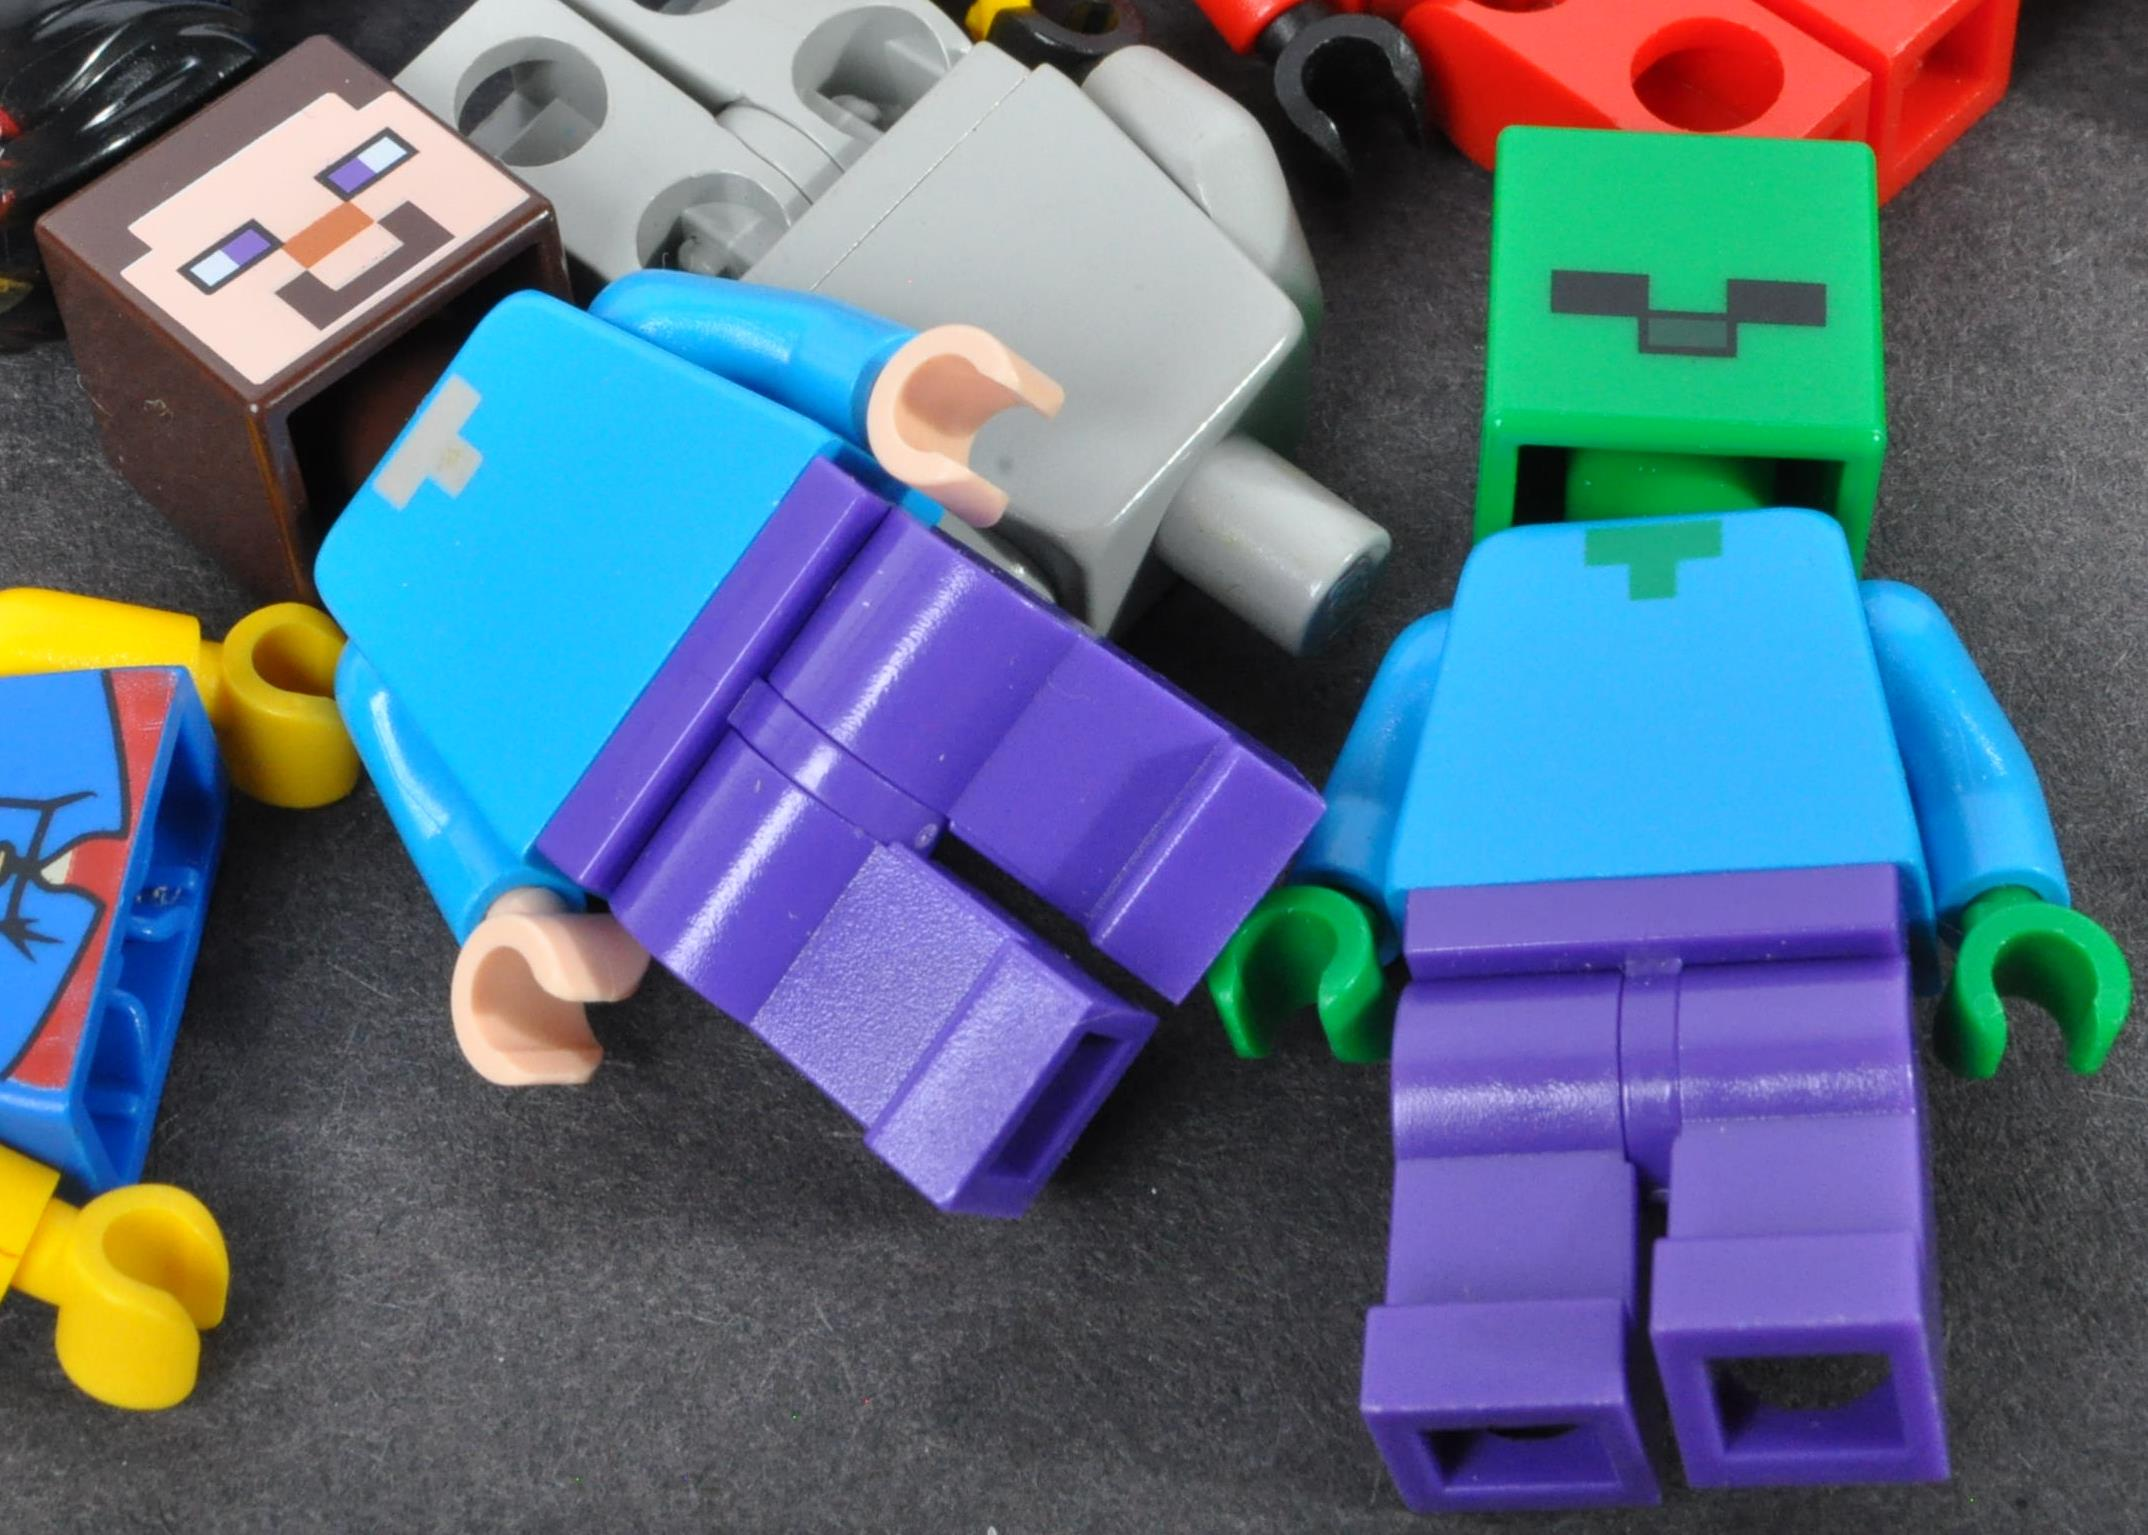 LEGO MINIFIGURES - COLLECTION OF ASSORTED LEGO MINIFIGURE PARTS - Image 2 of 5